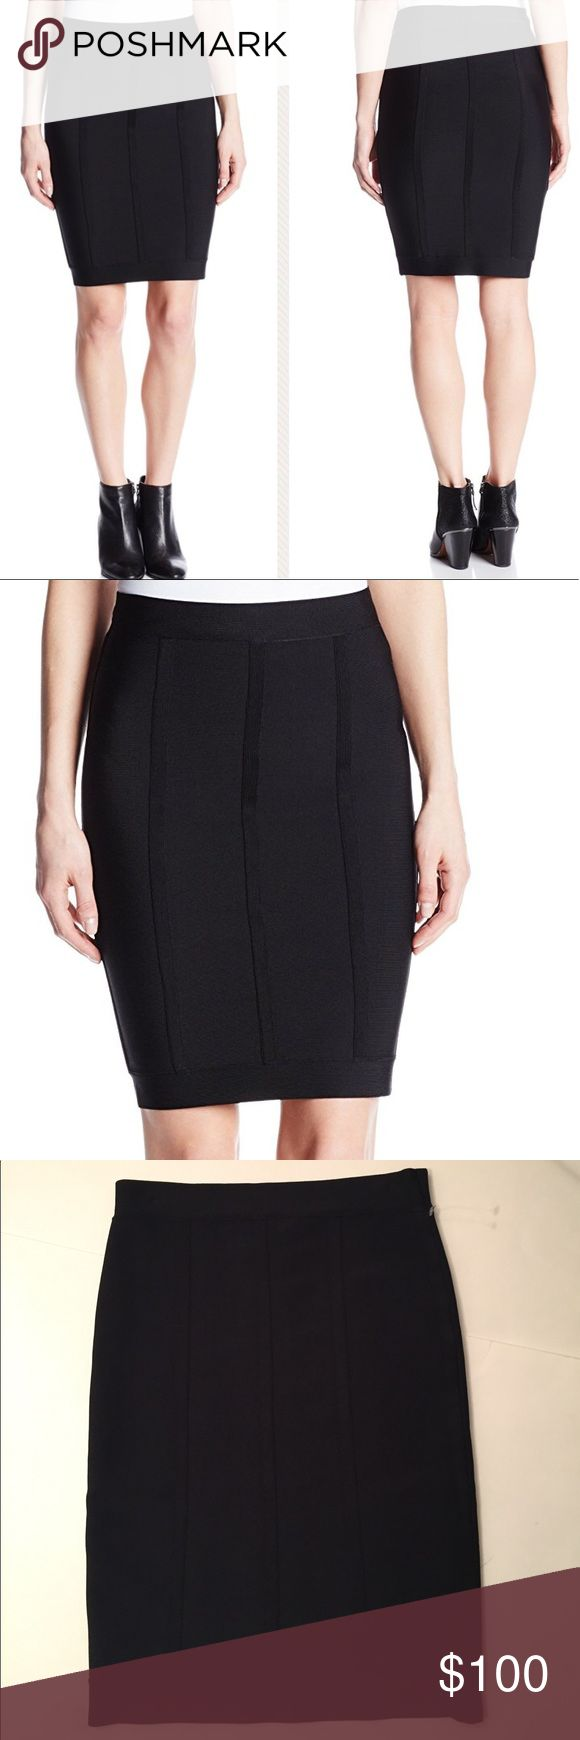 BCBGMAXAZRIA Nita Pencil Skirt BCBGMAXAZRIA Nita Pencil Skirt in Black. Solid-tone tube skirt with elasticized waistband and horizontal strapping/piping  throughout. Banded hemline. Pencil skirt silhouette. Rayon/Nylon/Spandex. New without tags. BCBGMaxAzria Skirts Pencil